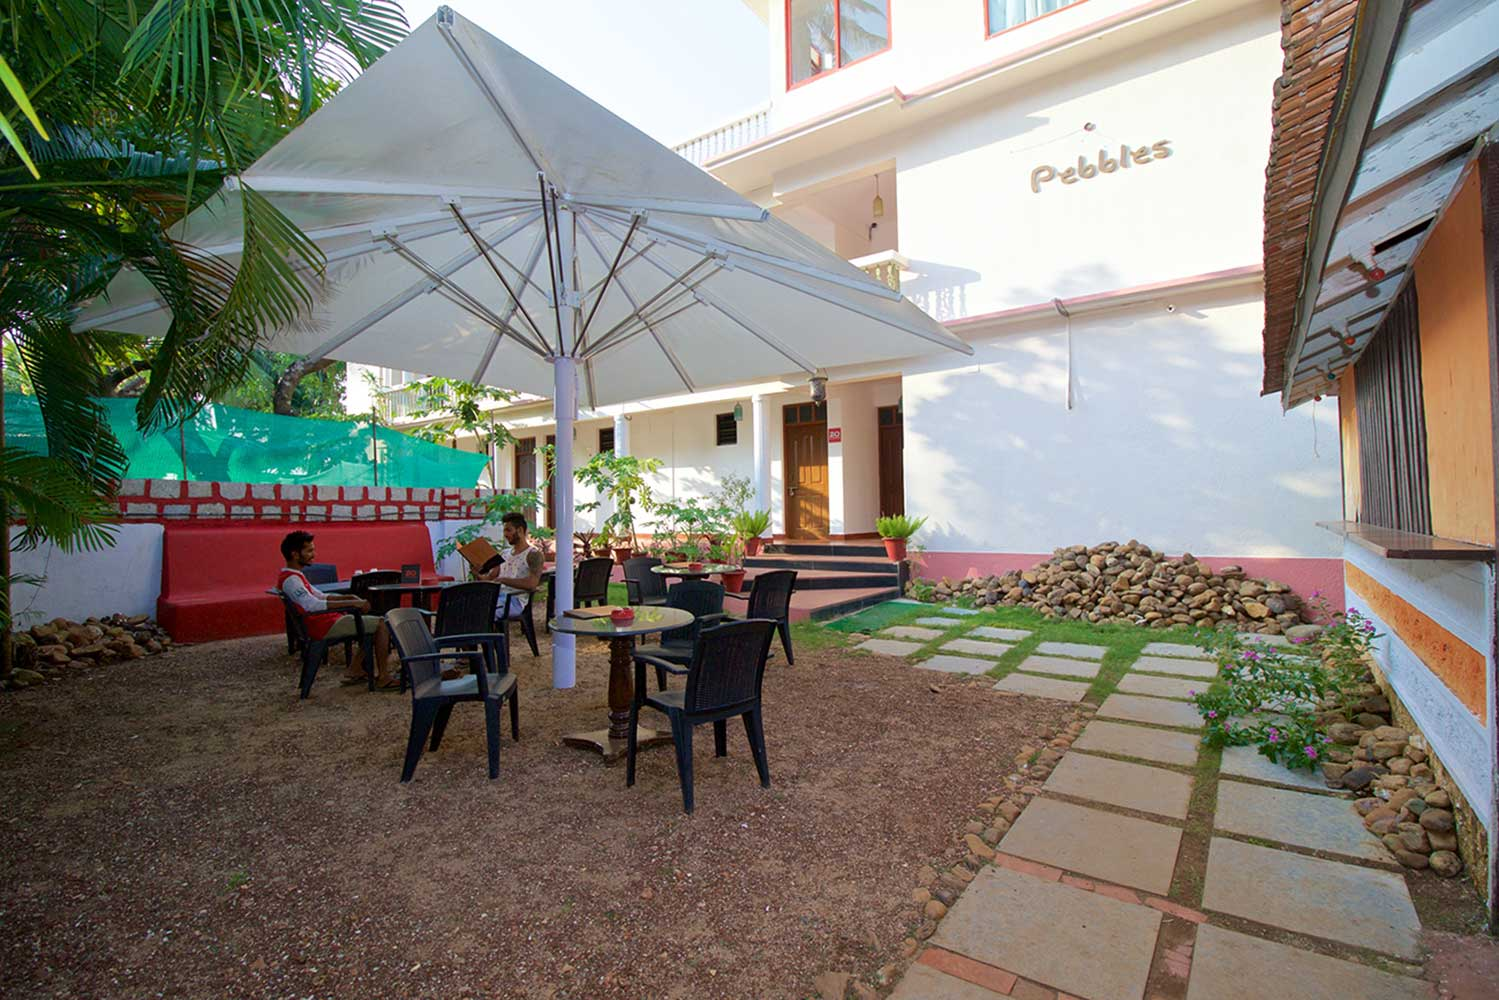 Pebbles-Anjuna-Guesthouse-B&B-Front-Facade-and-Restaurant